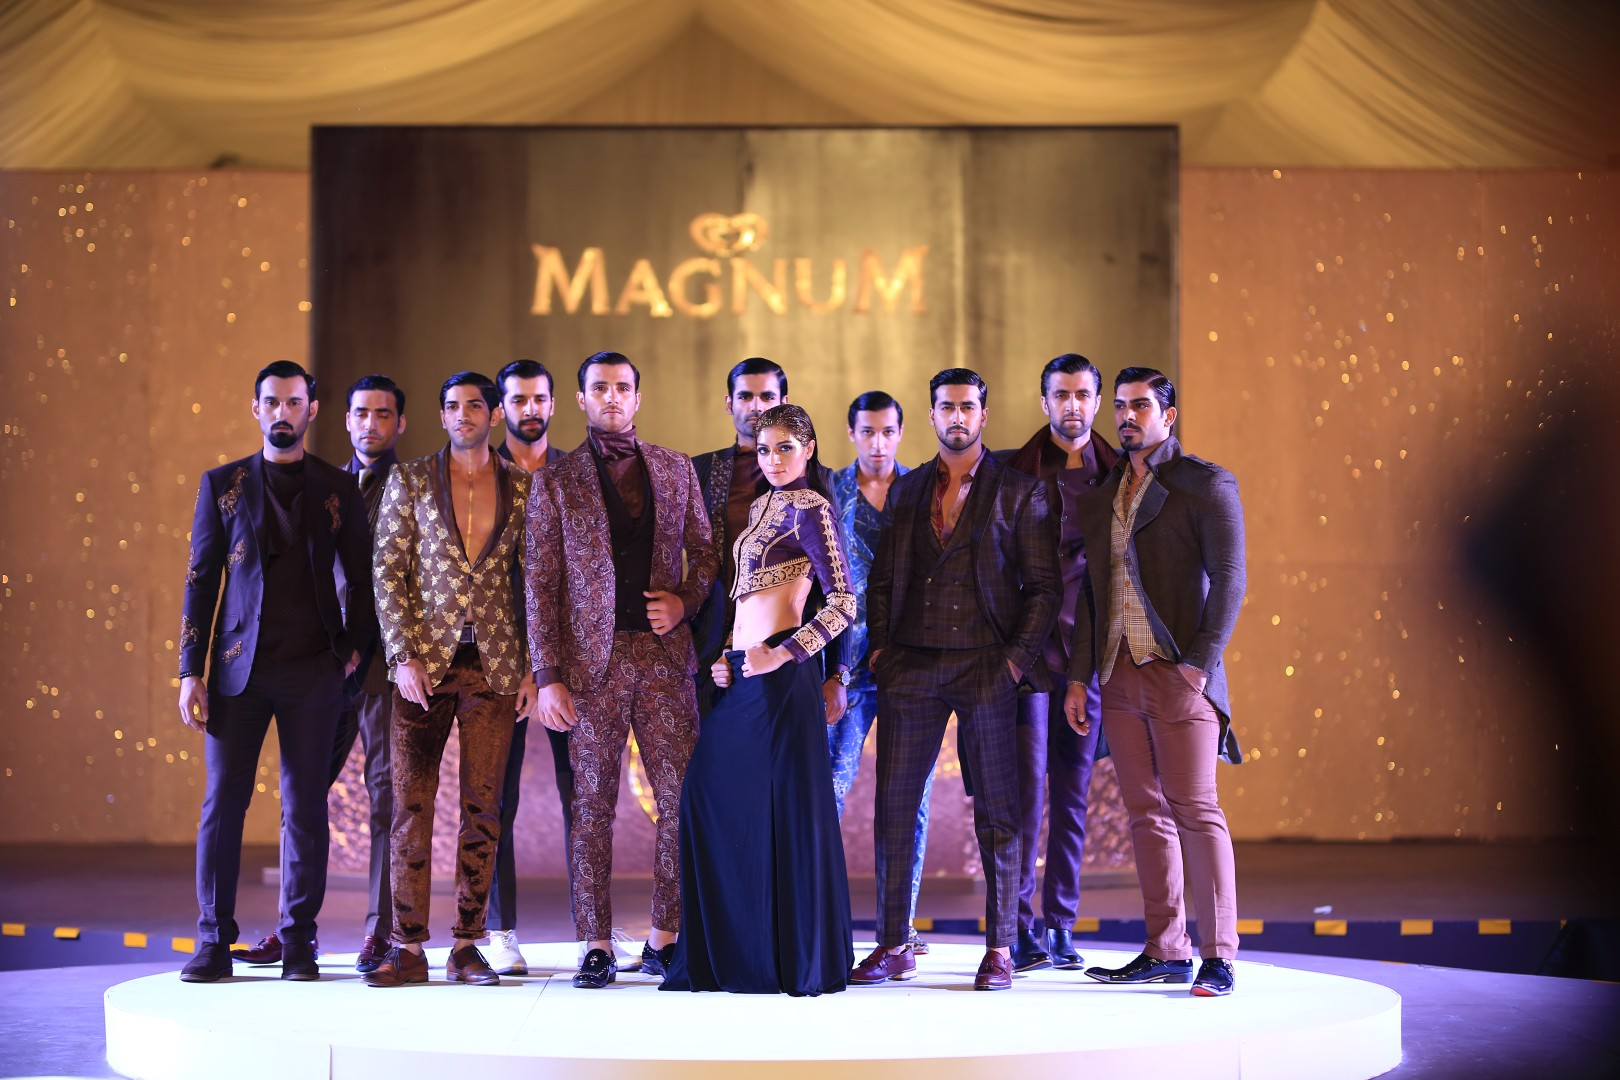 The Magnum Chocolate Party presenting 'A Chocolate Affair'